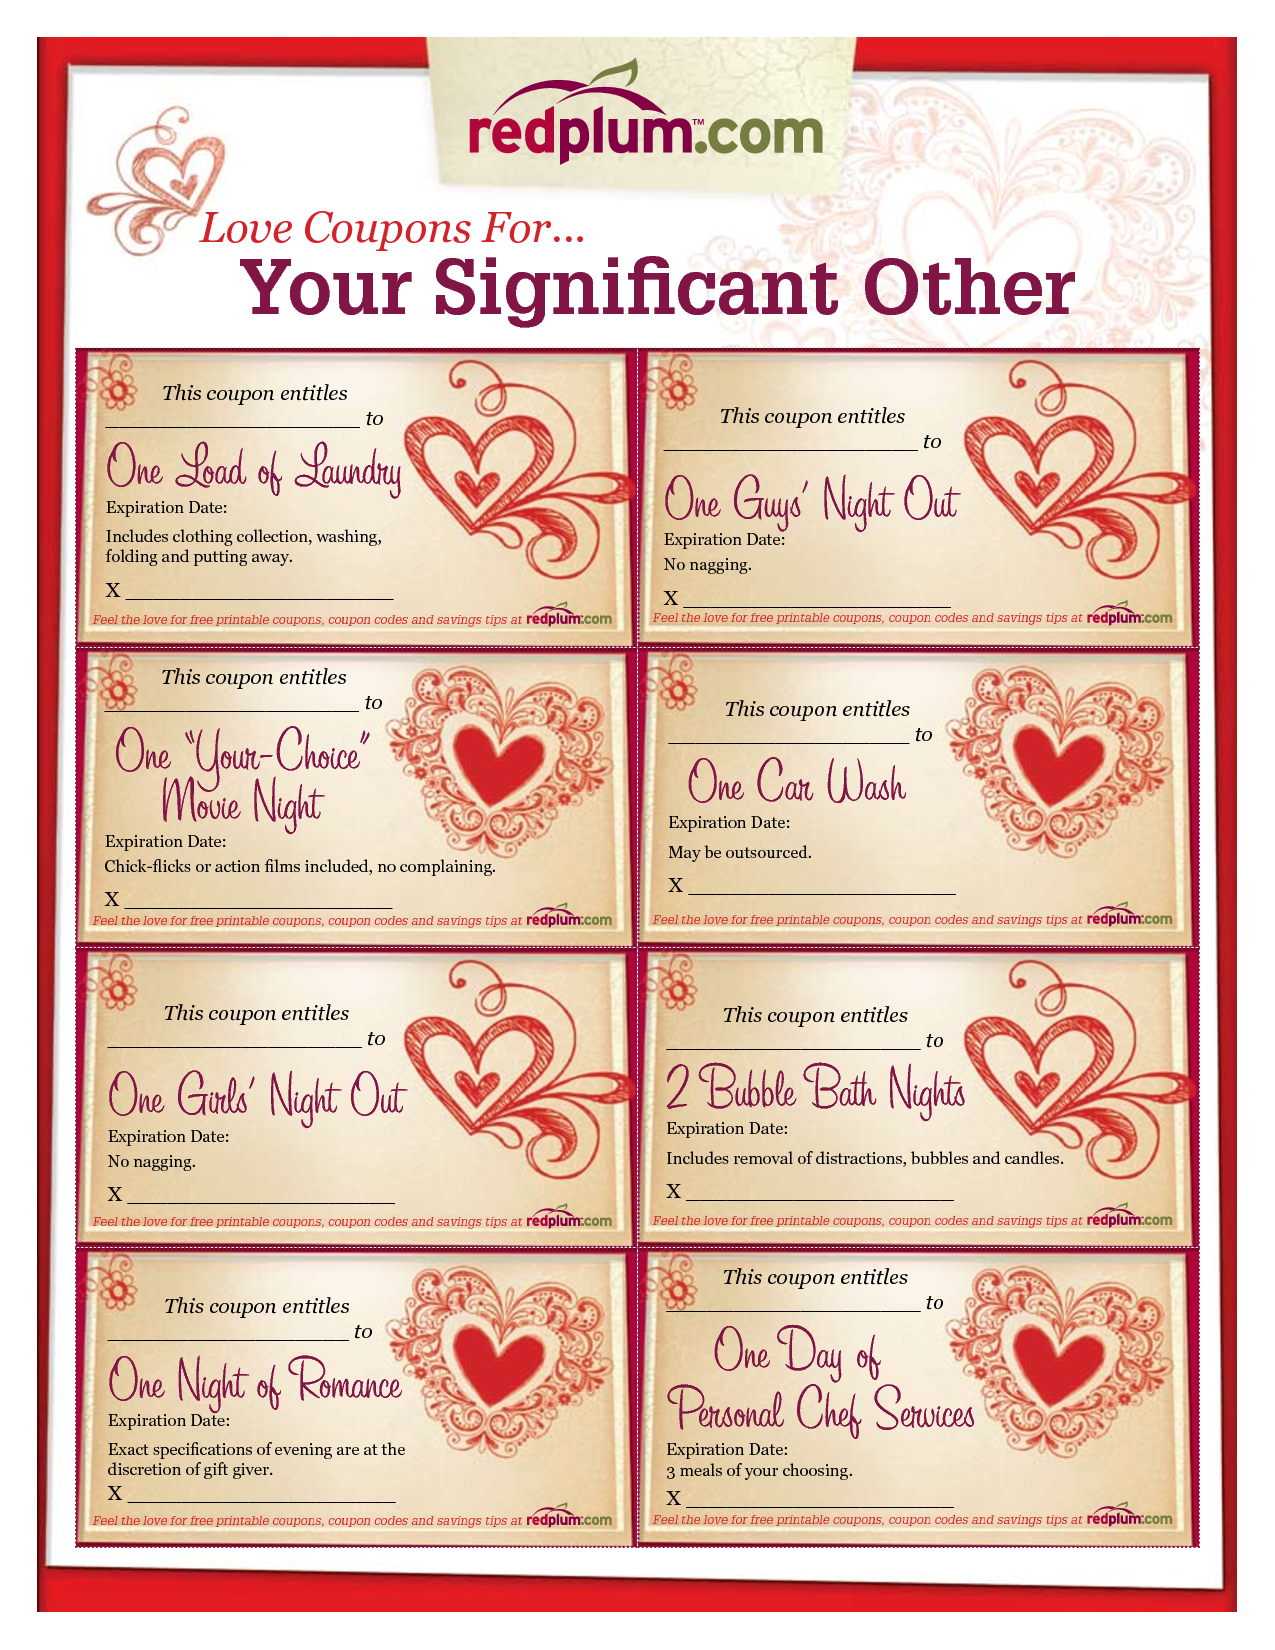 Romantic Love Coupon Template Printable | Love Coupons For Your Significant  Other   RedPlum.com  Free Coupon Template